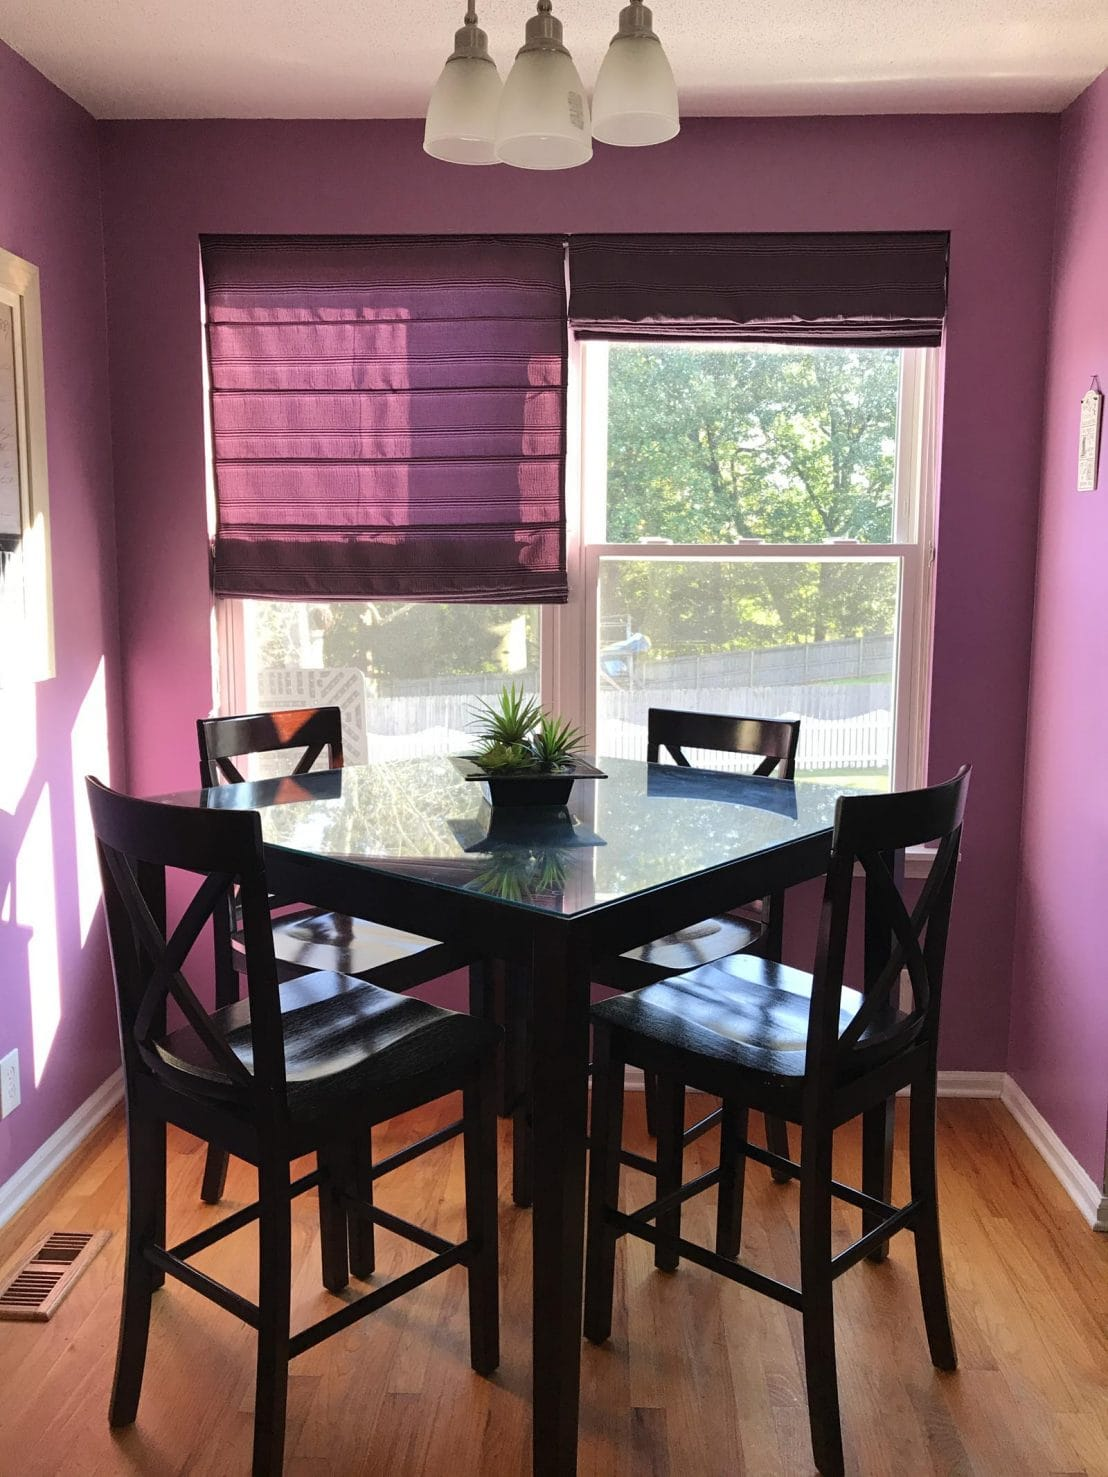 Our mini kitchen makeover featured a redo of the breakfast space. We added new paint and replaced the table with a French marble top island for prep and food photography. #homedecor #interiordesign #kitchenmakeover